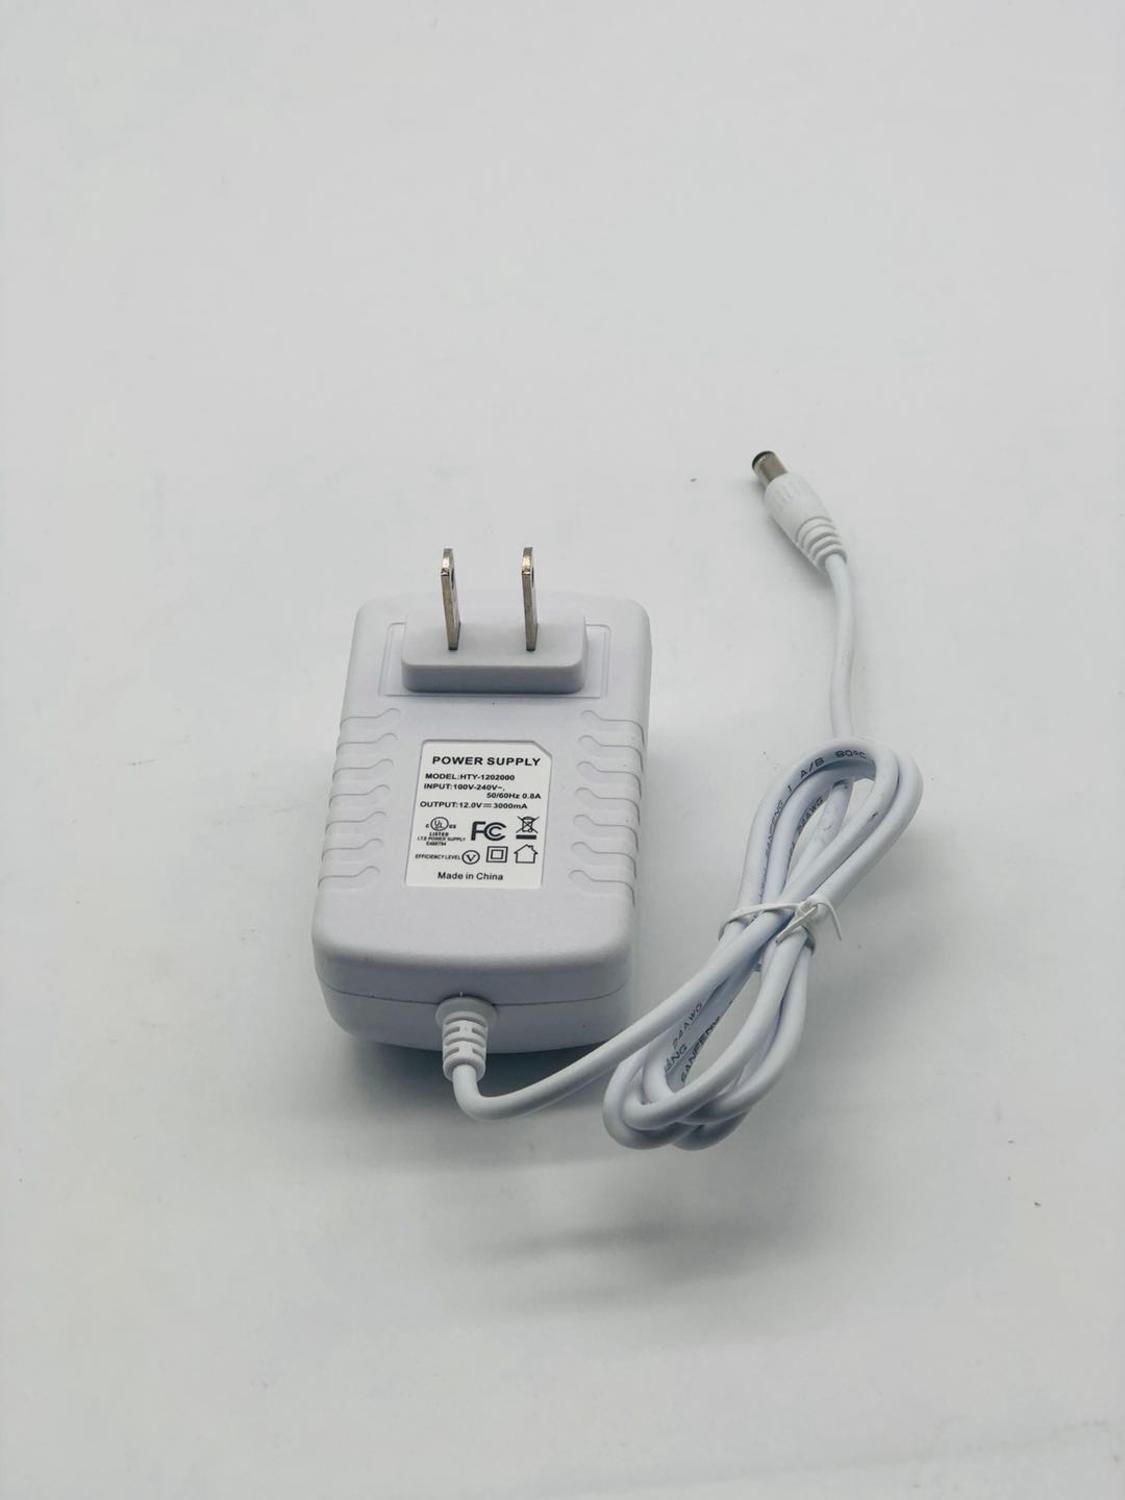 Adapter DC12V 3A  Adaptor Charger Supply Universal Switching For LED Light Strips Power Adapter